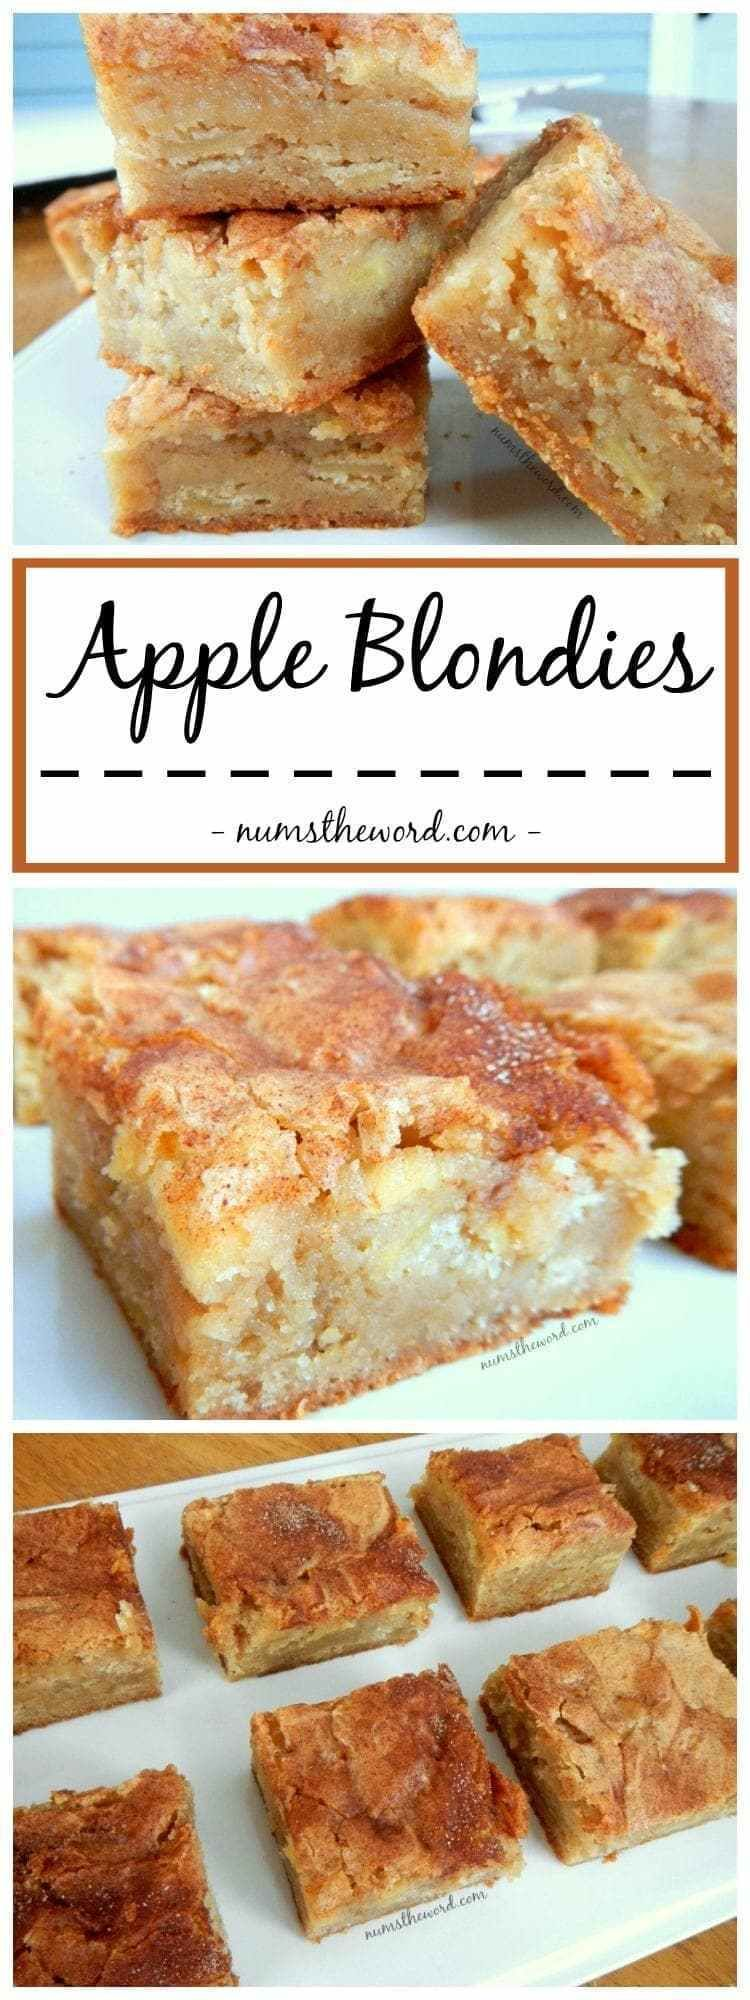 Apple Blondies - These Apple Bars are a perfect Autumn dessert that mixes apple pie and blondies. Yummy Apple blondies with a large scoop of vanilla ice cream is the perfect dessert {or snack!}